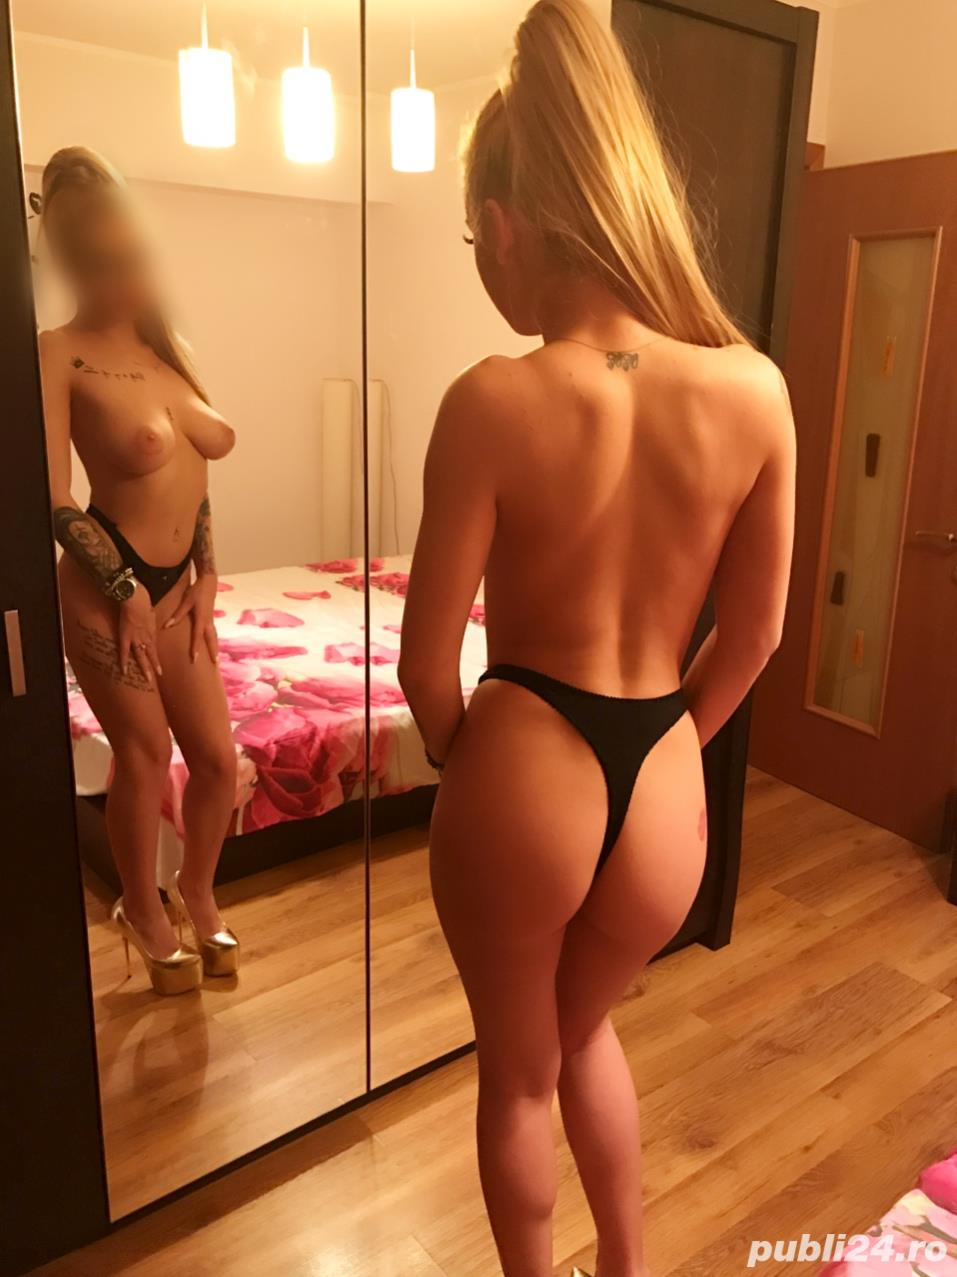 escorte tønsberg internet dating